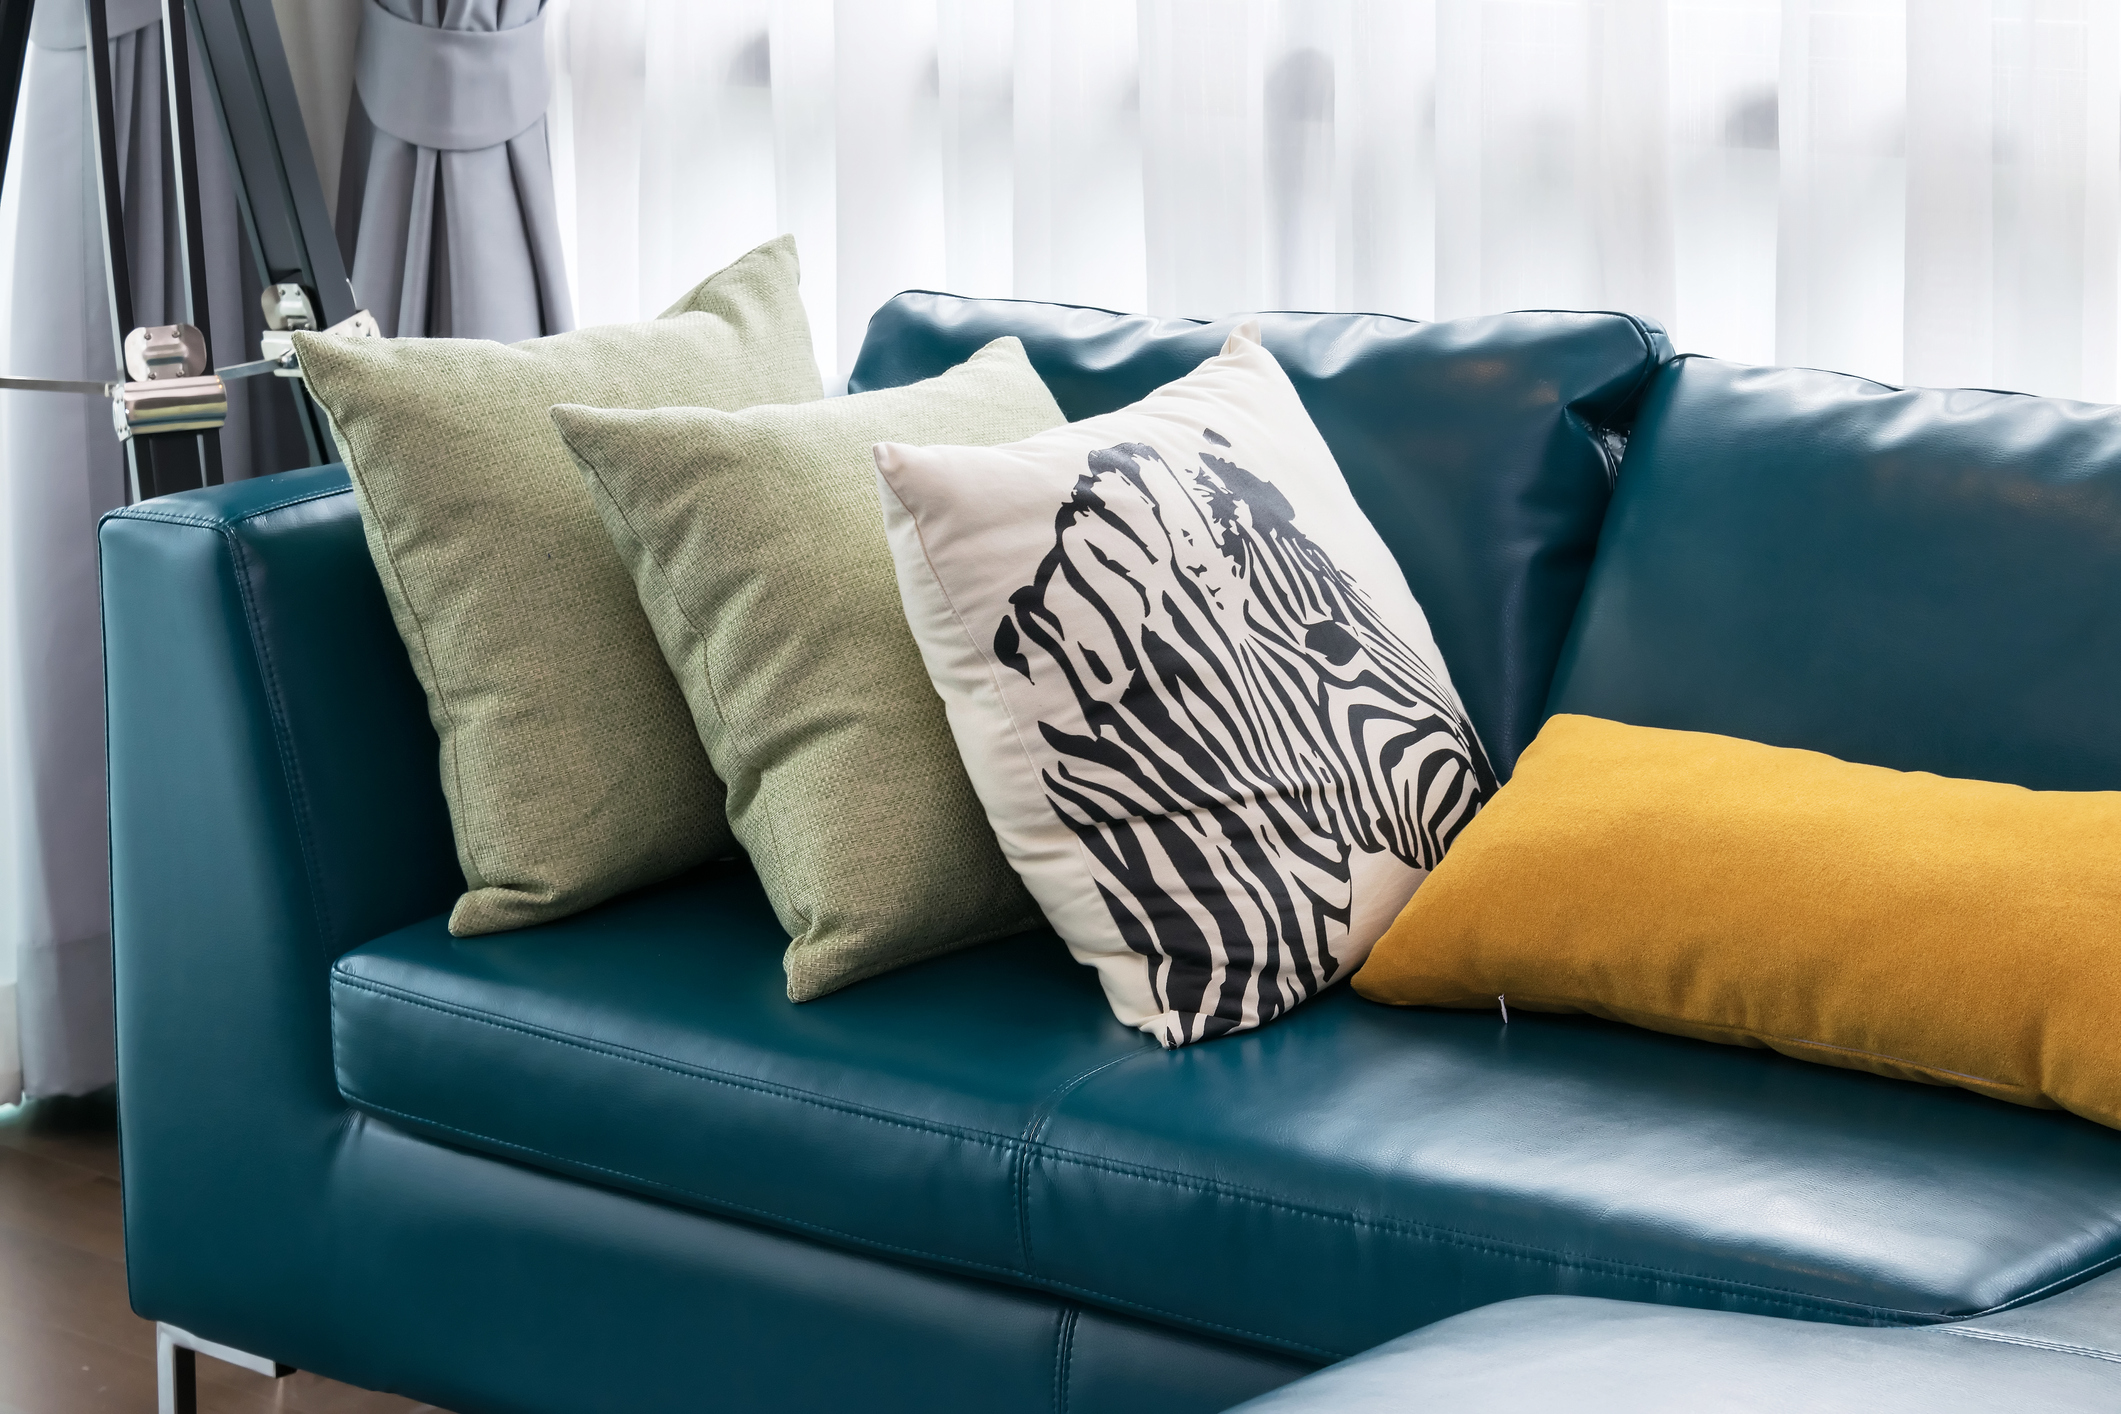 How Can I Make Couch Cushions Firmer, How To Repair My Sofa Cushions